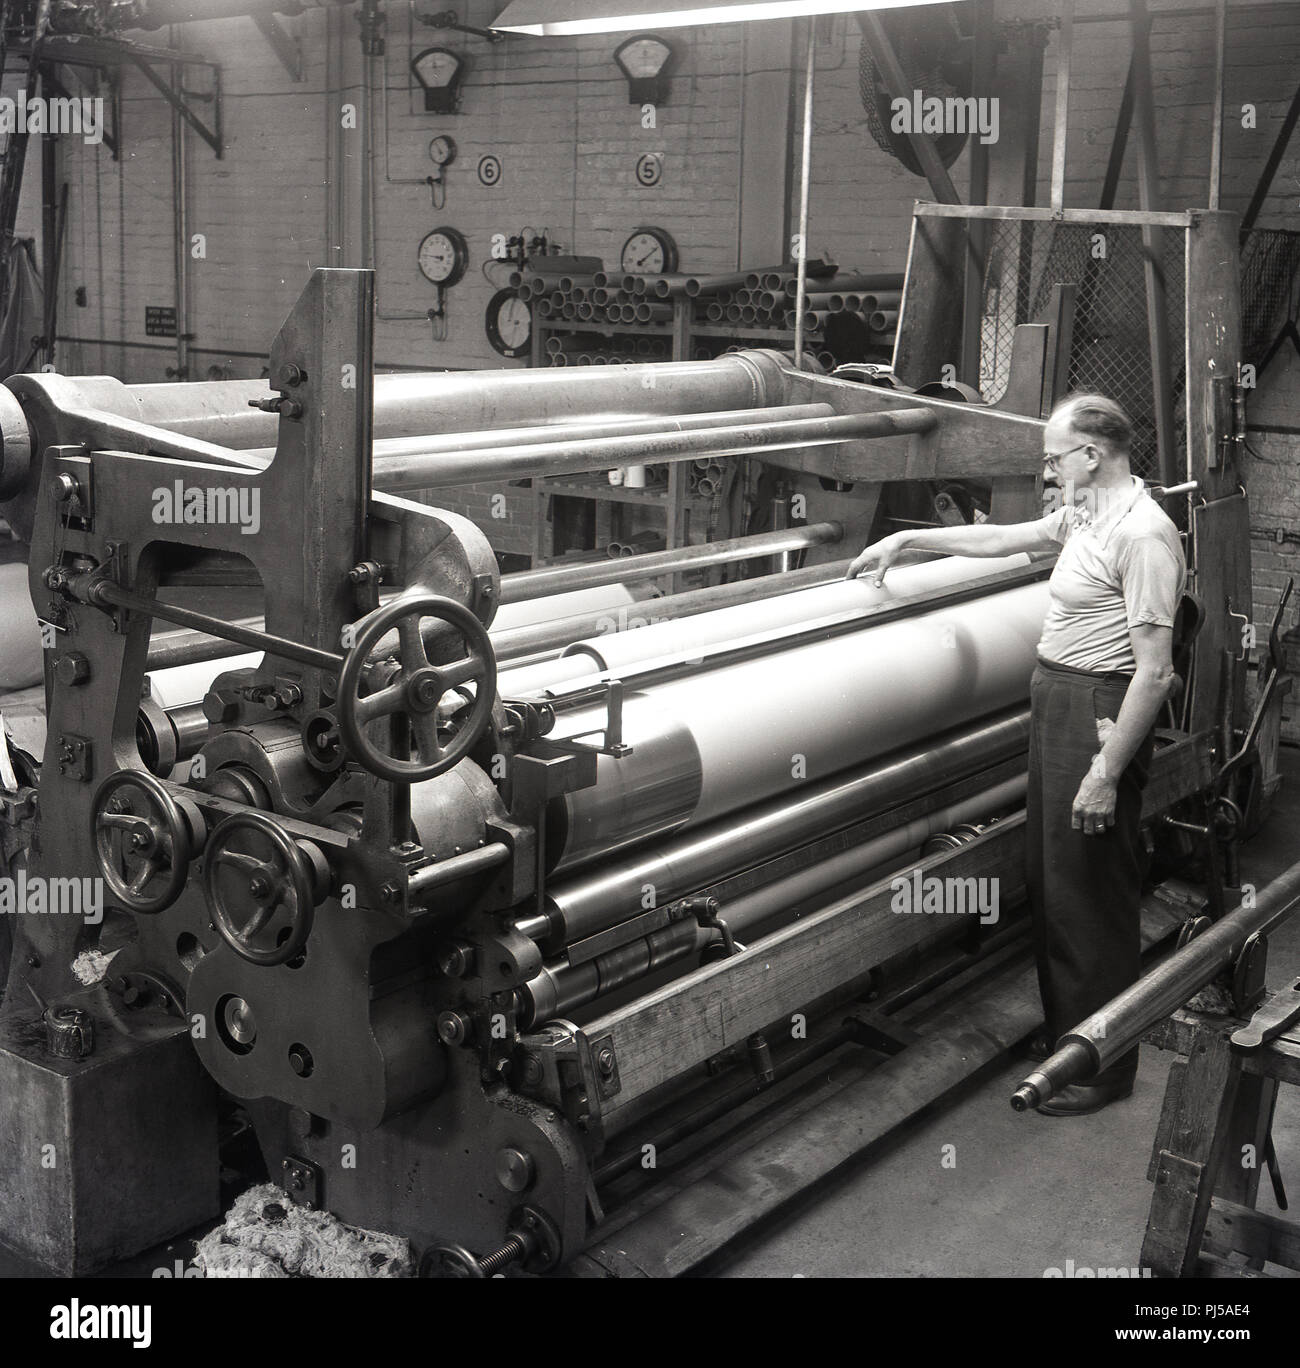 1950s, historical, At the Brittains paper mill, a male worker oversees a large paper press machine using large steel rollers or 'calender rolls' to produce a paper with a smooth finish, England, UK. - Stock Image